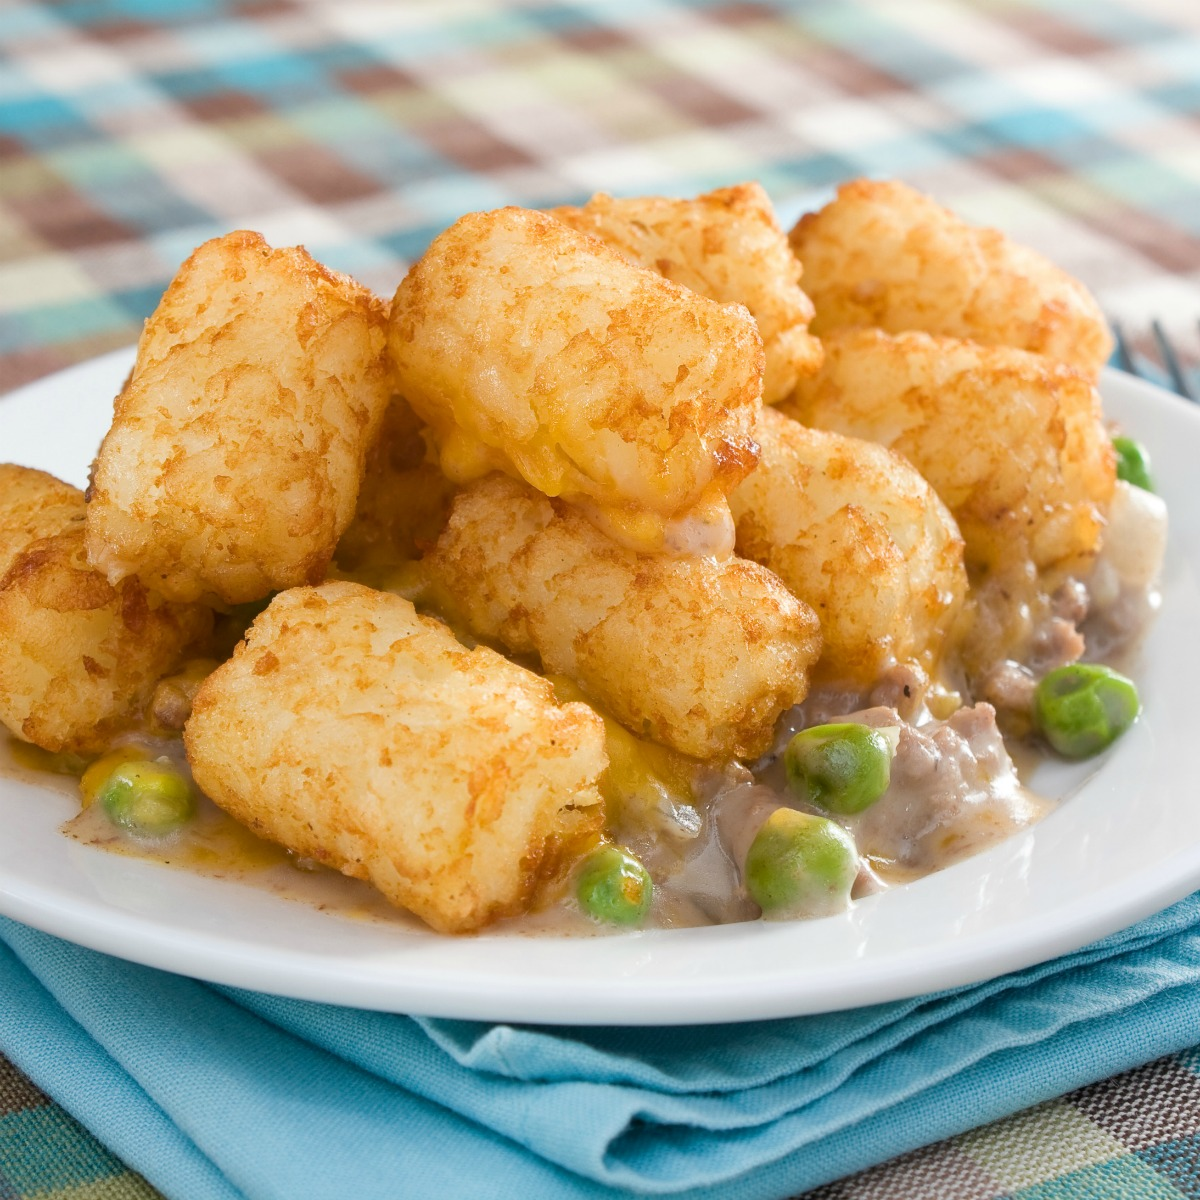 This easy Tater Tot Hot Dish is a perfect family dinner or potluck favorite. A hearty filling is topped with crispy tater tots for a truly comforting meal. #hotdish #casserole #tatertots